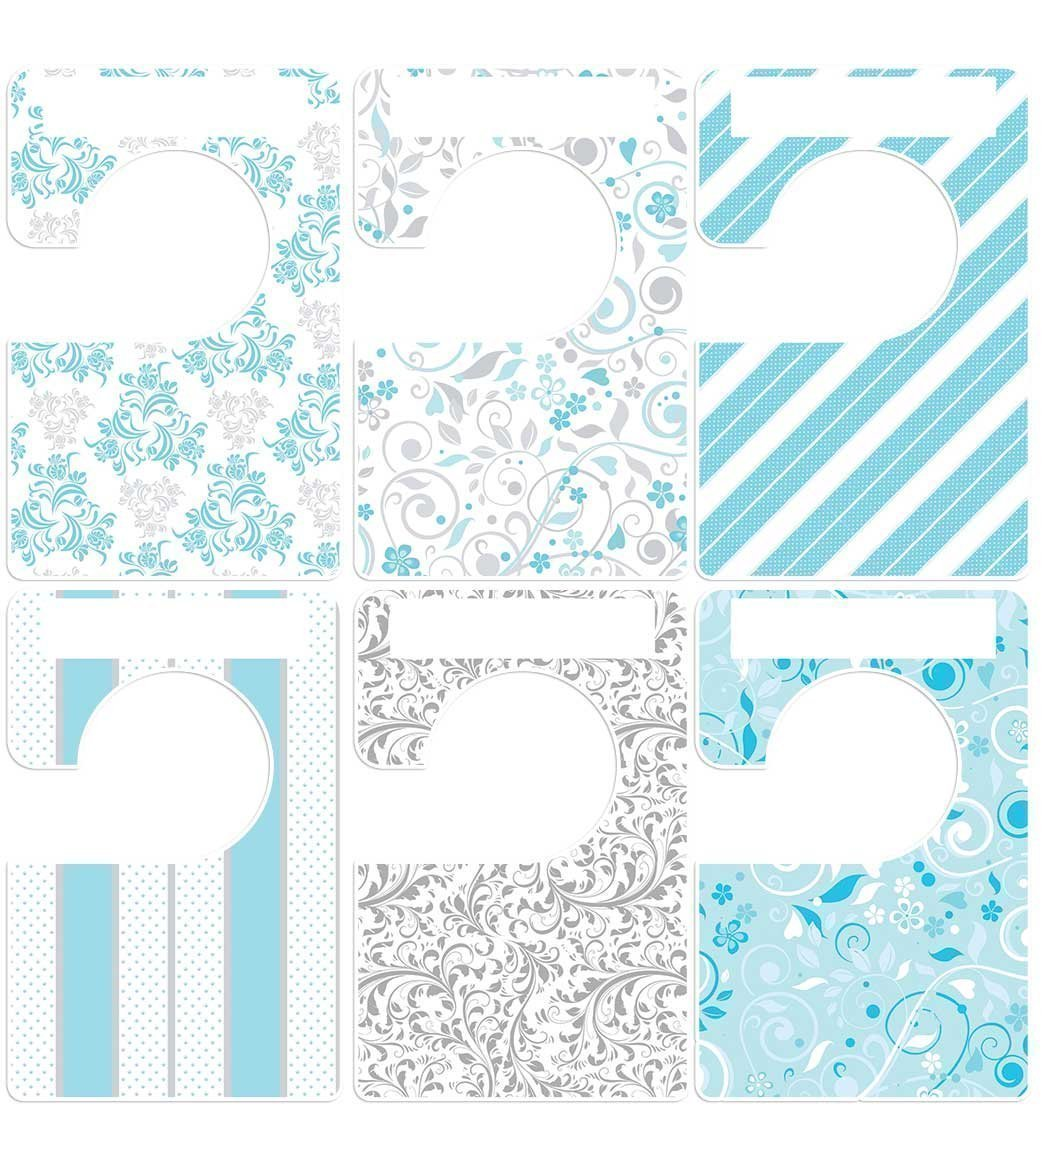 Closet Doodles 6 clothing dividers blue gray any size adult or baby Plus 48 Sorting Labels